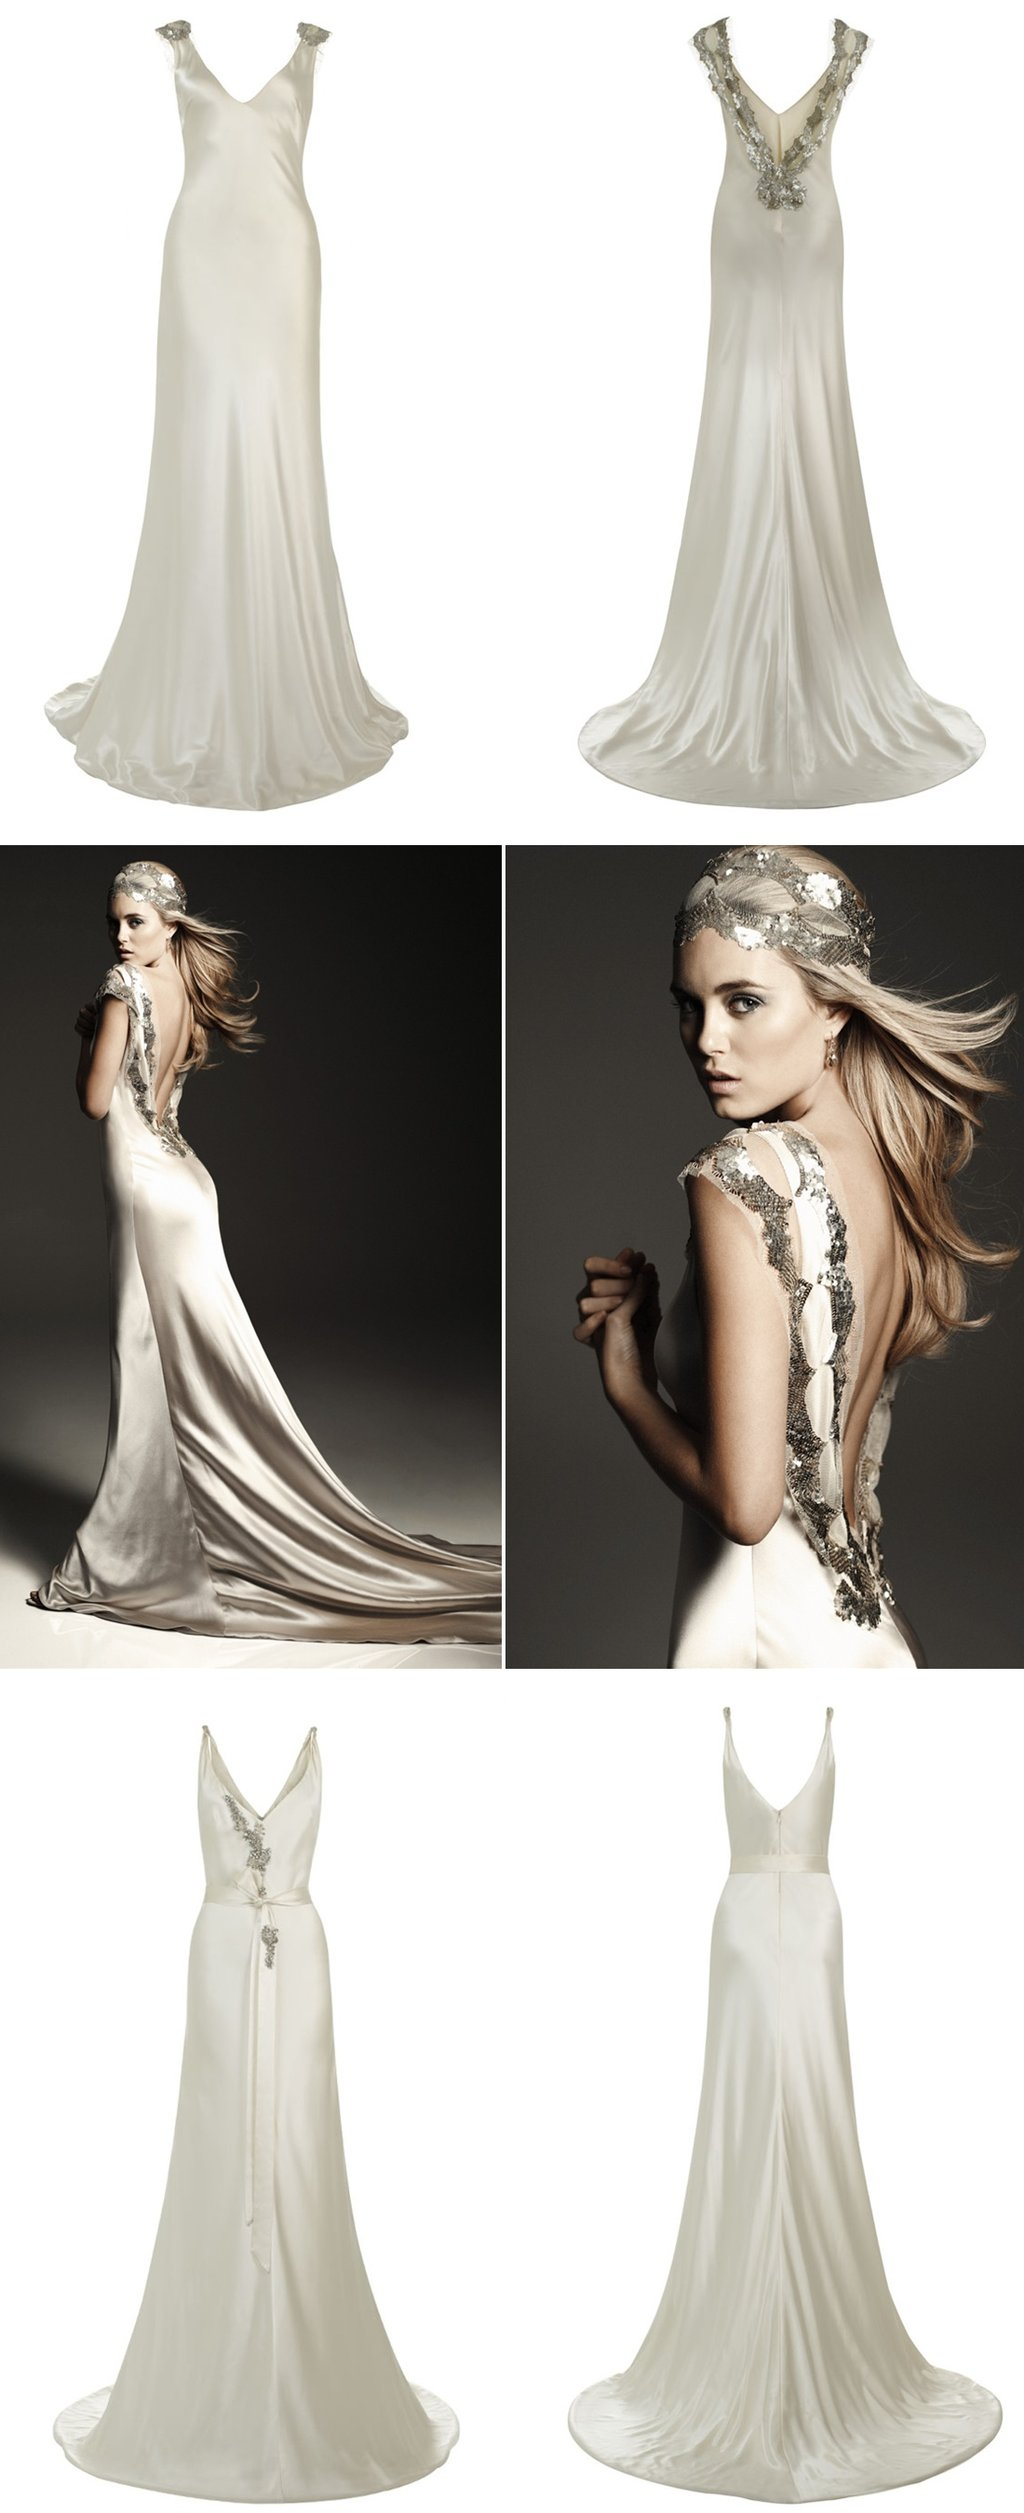 Johanna-johnson-wedding-dresses-2012-bridal-gown.full